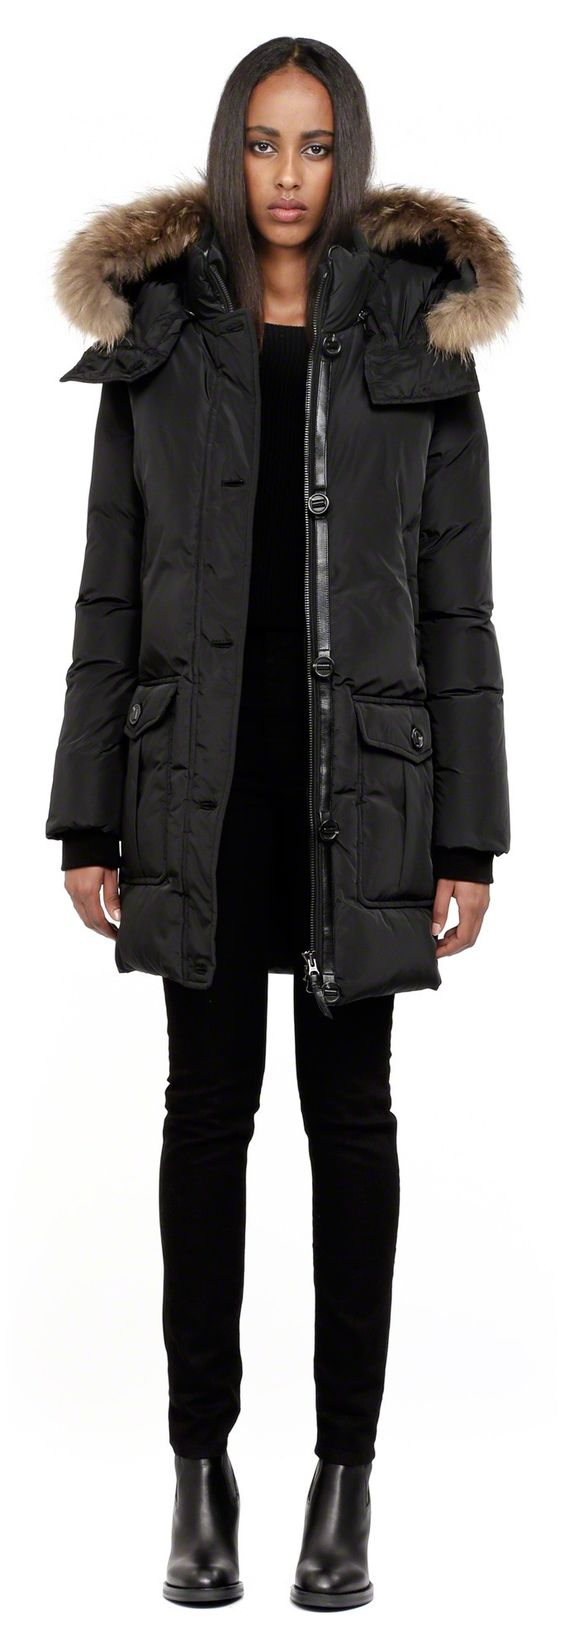 Mackage - CHASKA-F4 LONG BLACK DOWN PARKA COAT FOR WOMEN WITH